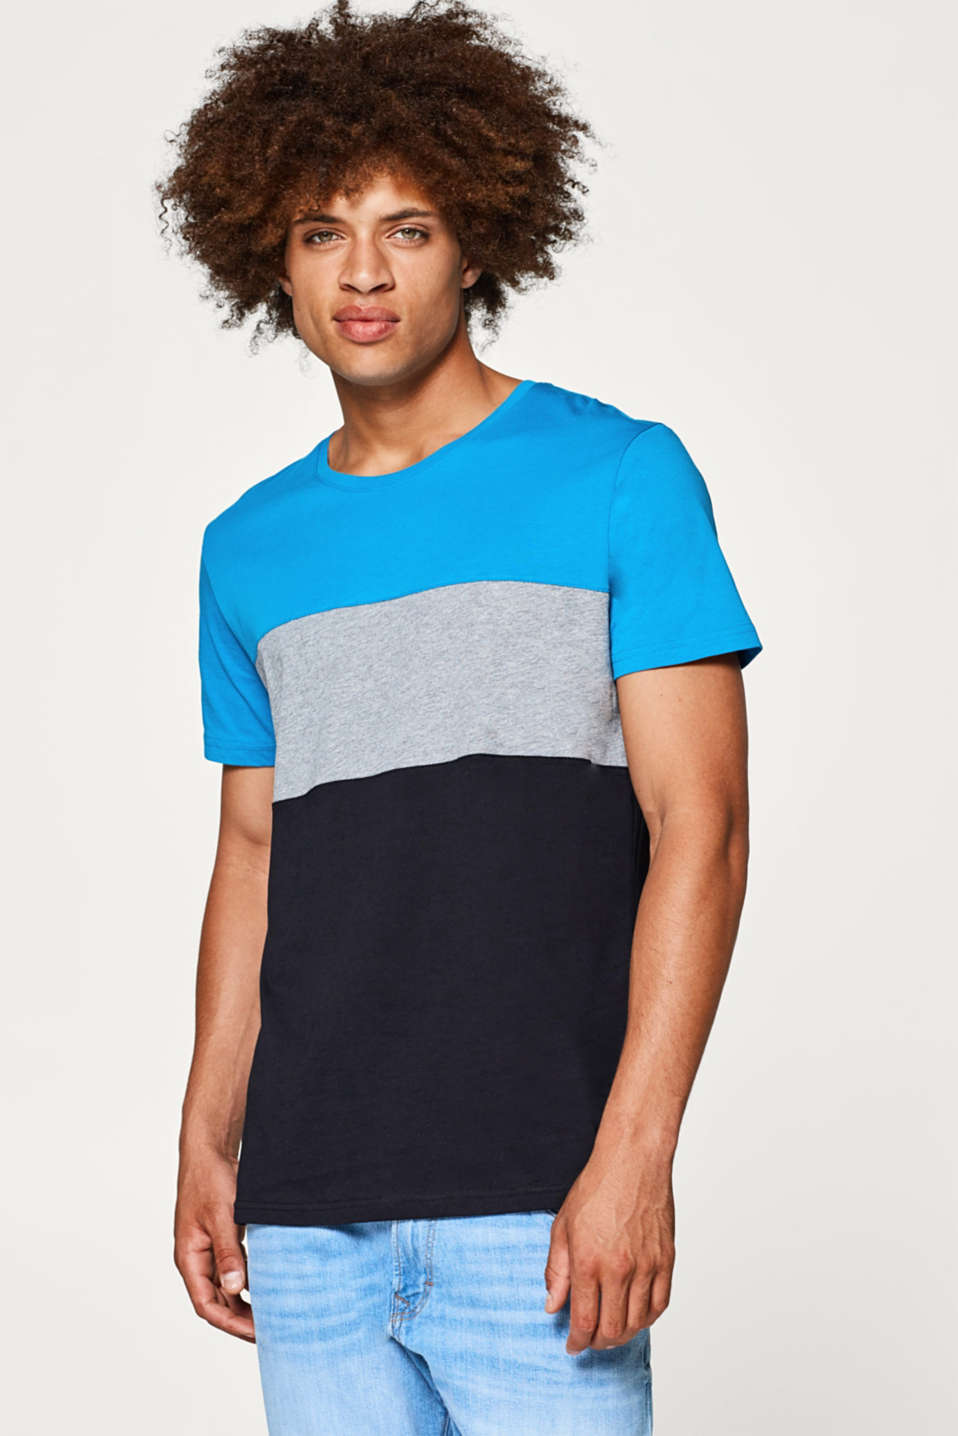 edc - Jersey T-shirt with block stripes, 100% cotton